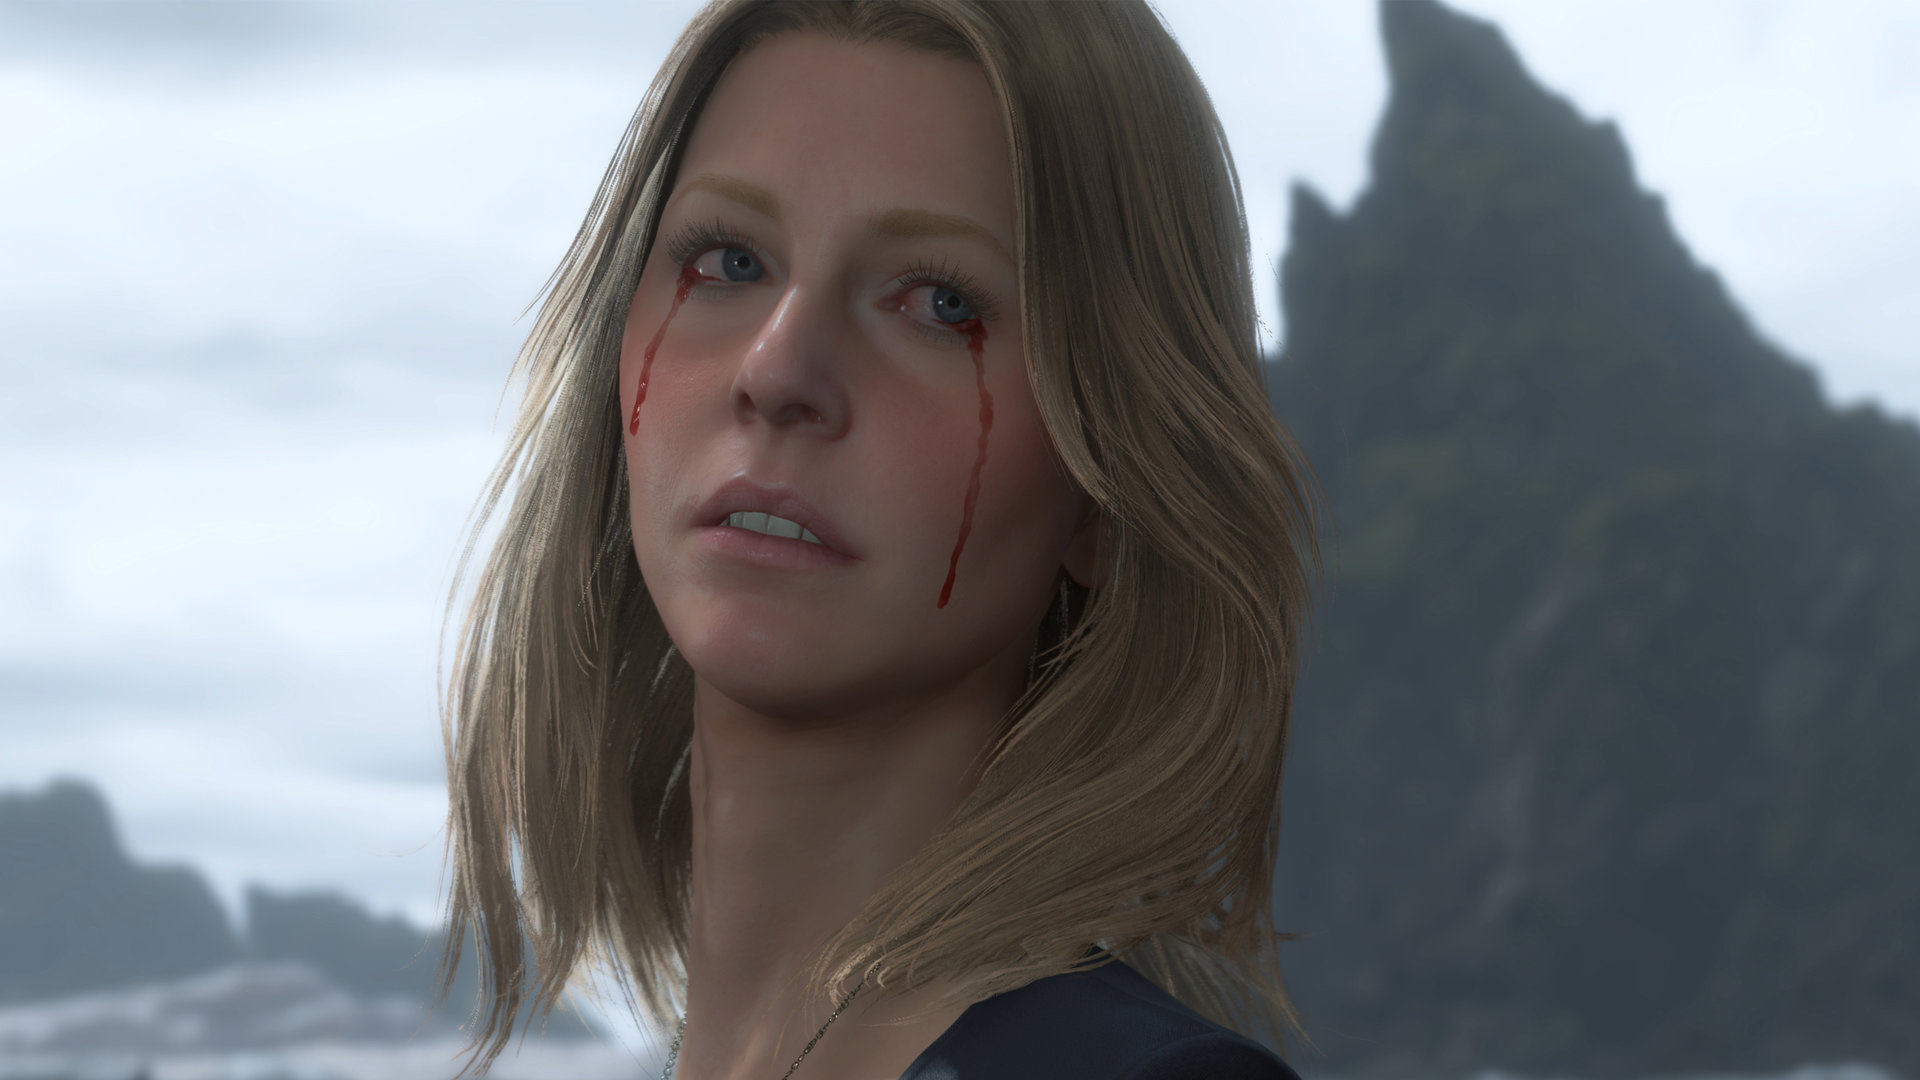 Death Stranding Review Embargo Will Lift Week Ahead of Launch, With Spoilers Already Emerging